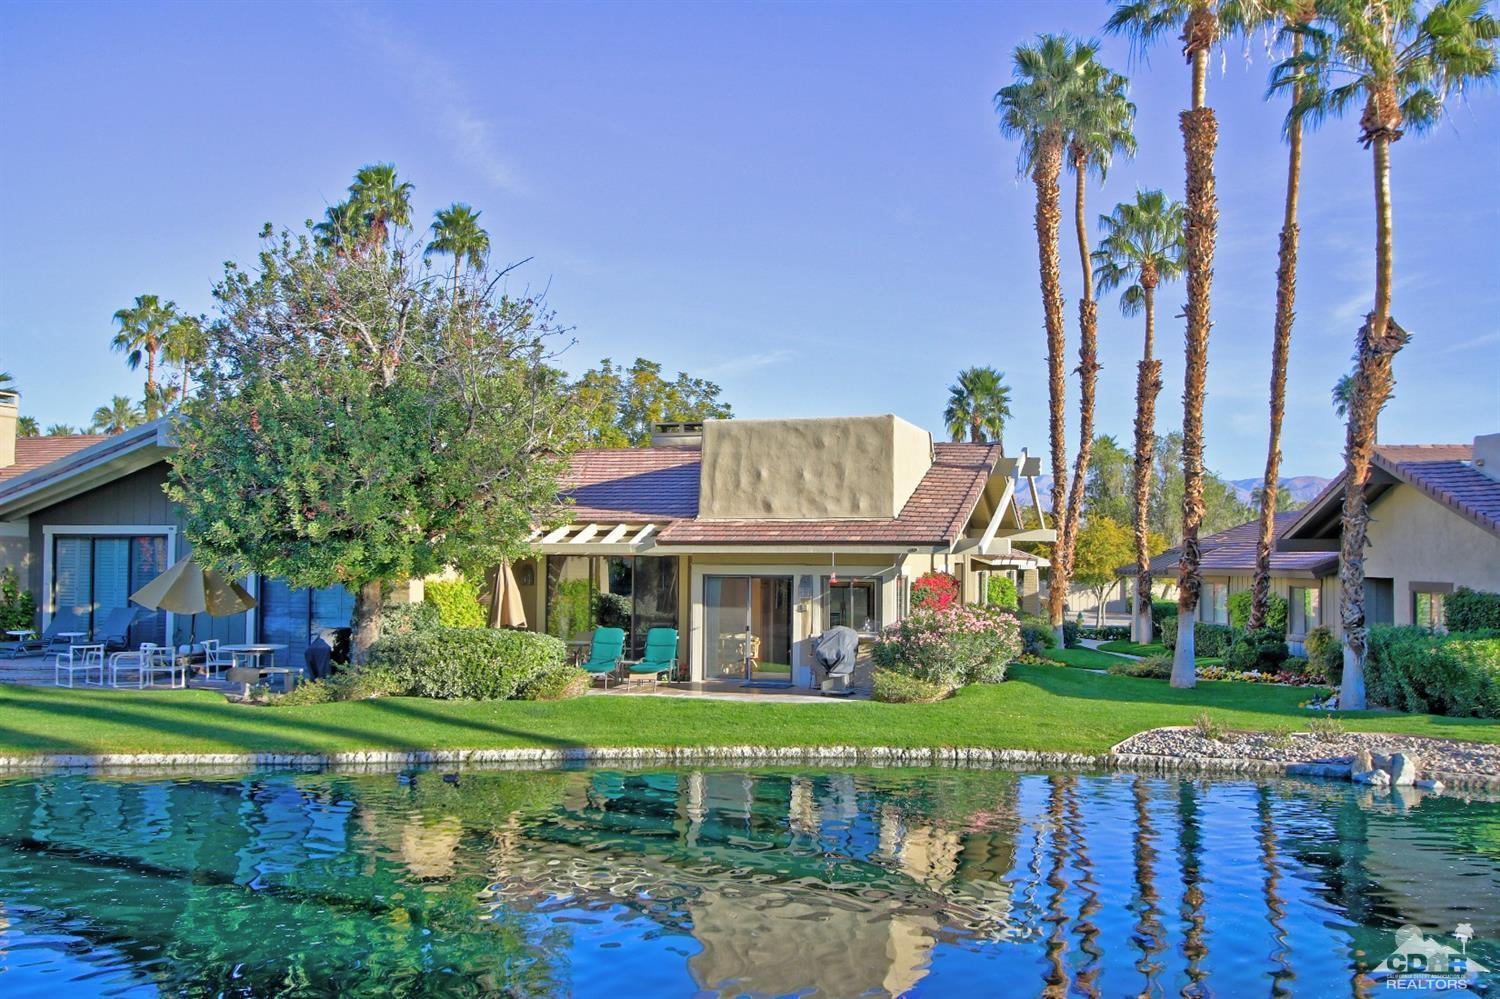 The lakes country club palm springs condos apartments for Palm springs condos for sale zillow